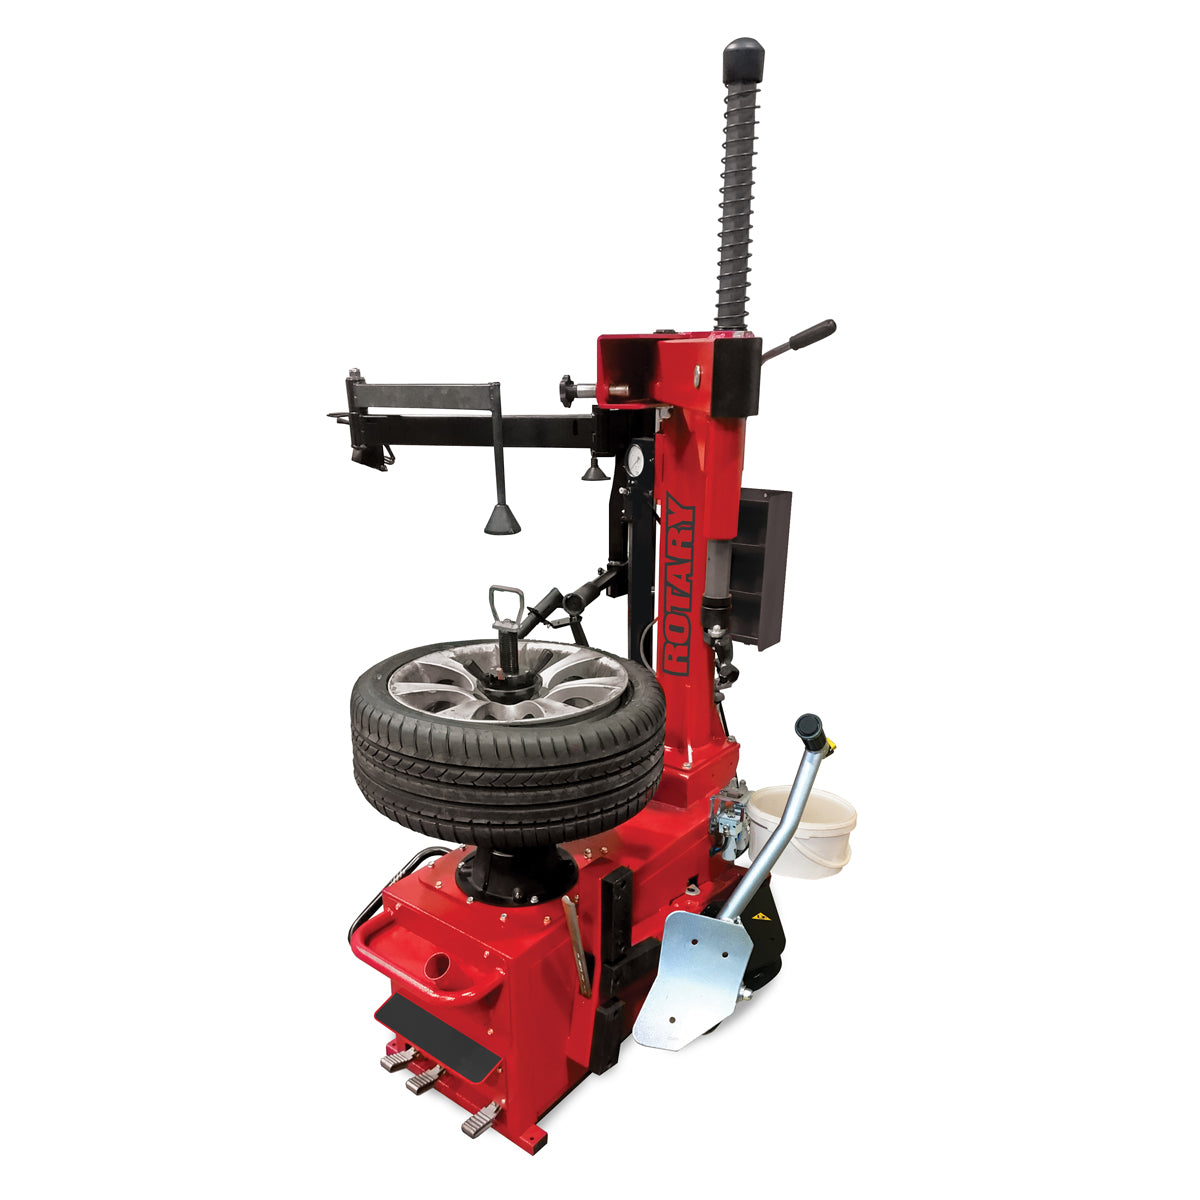 R247D Swingarm Center Lock Tire Changer